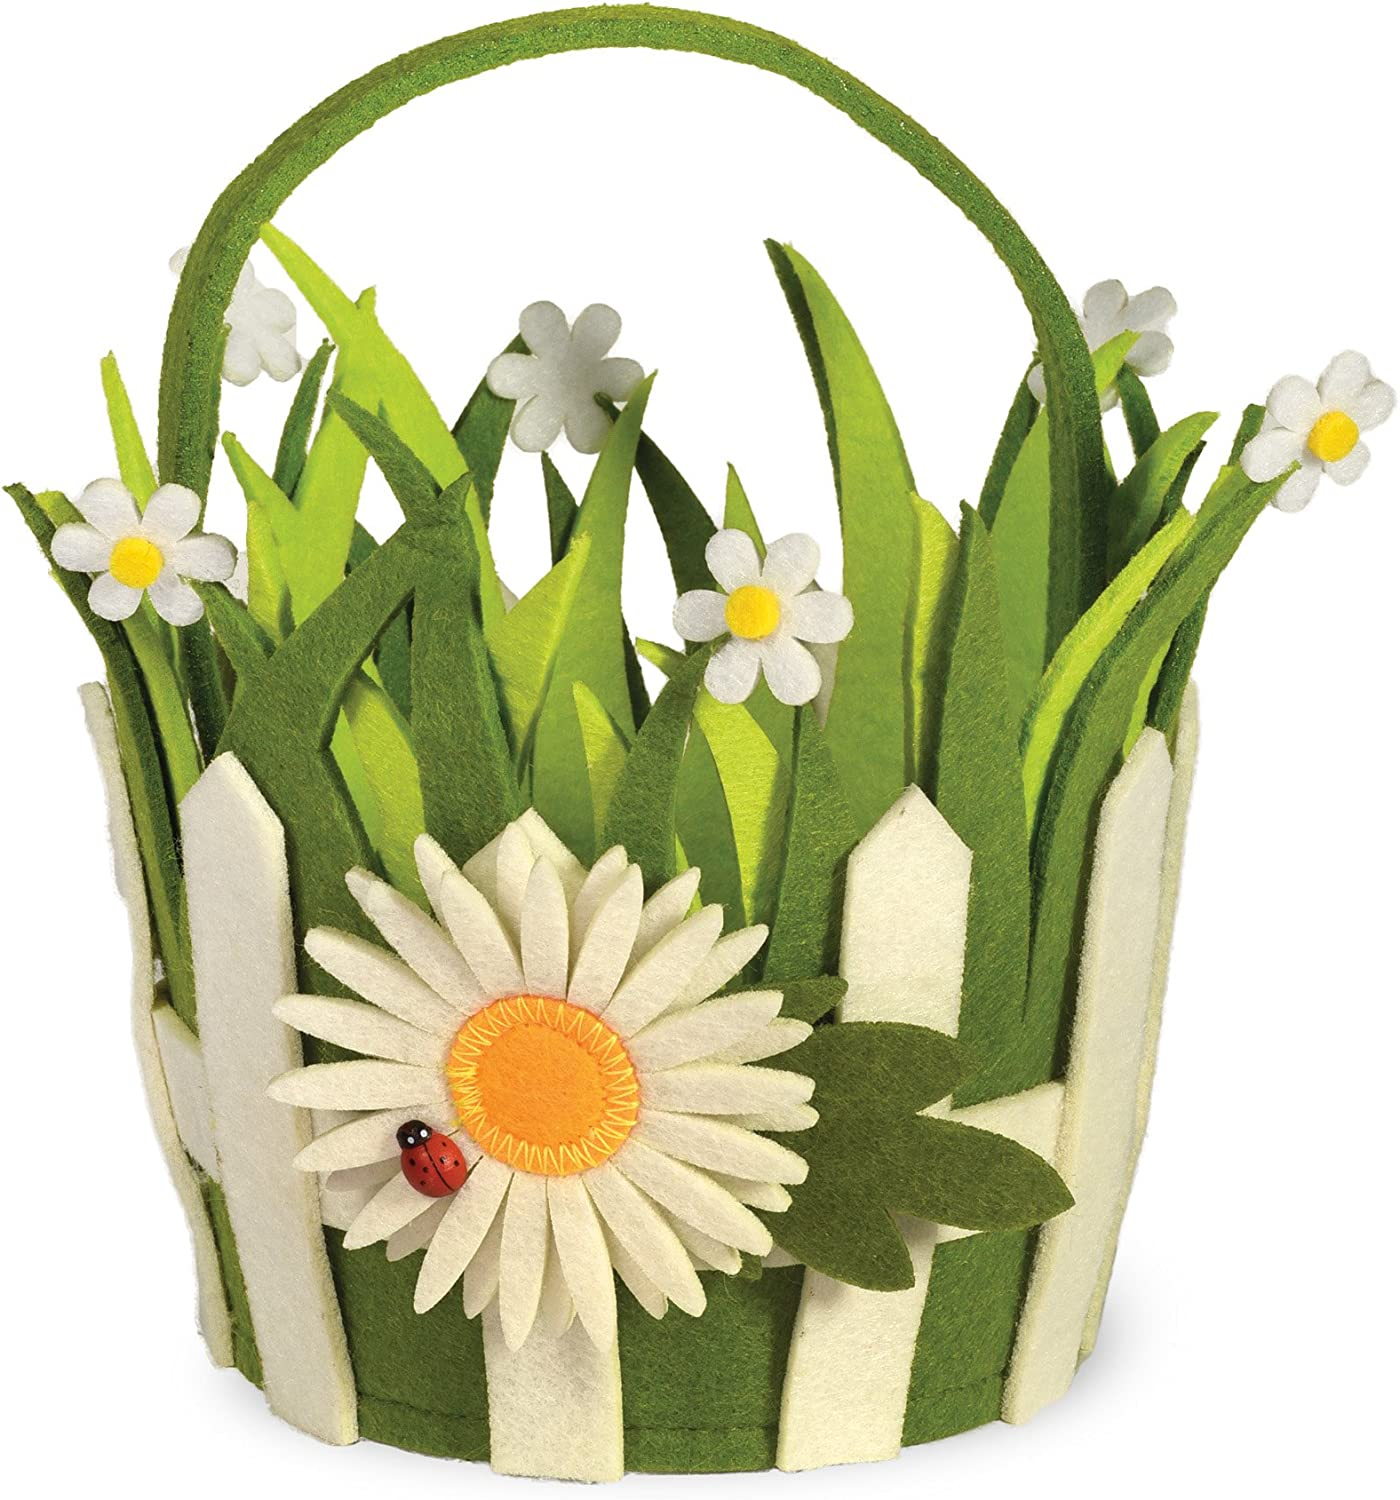 Boston International Daisy Picket Fence Felt Basket, Multicolor